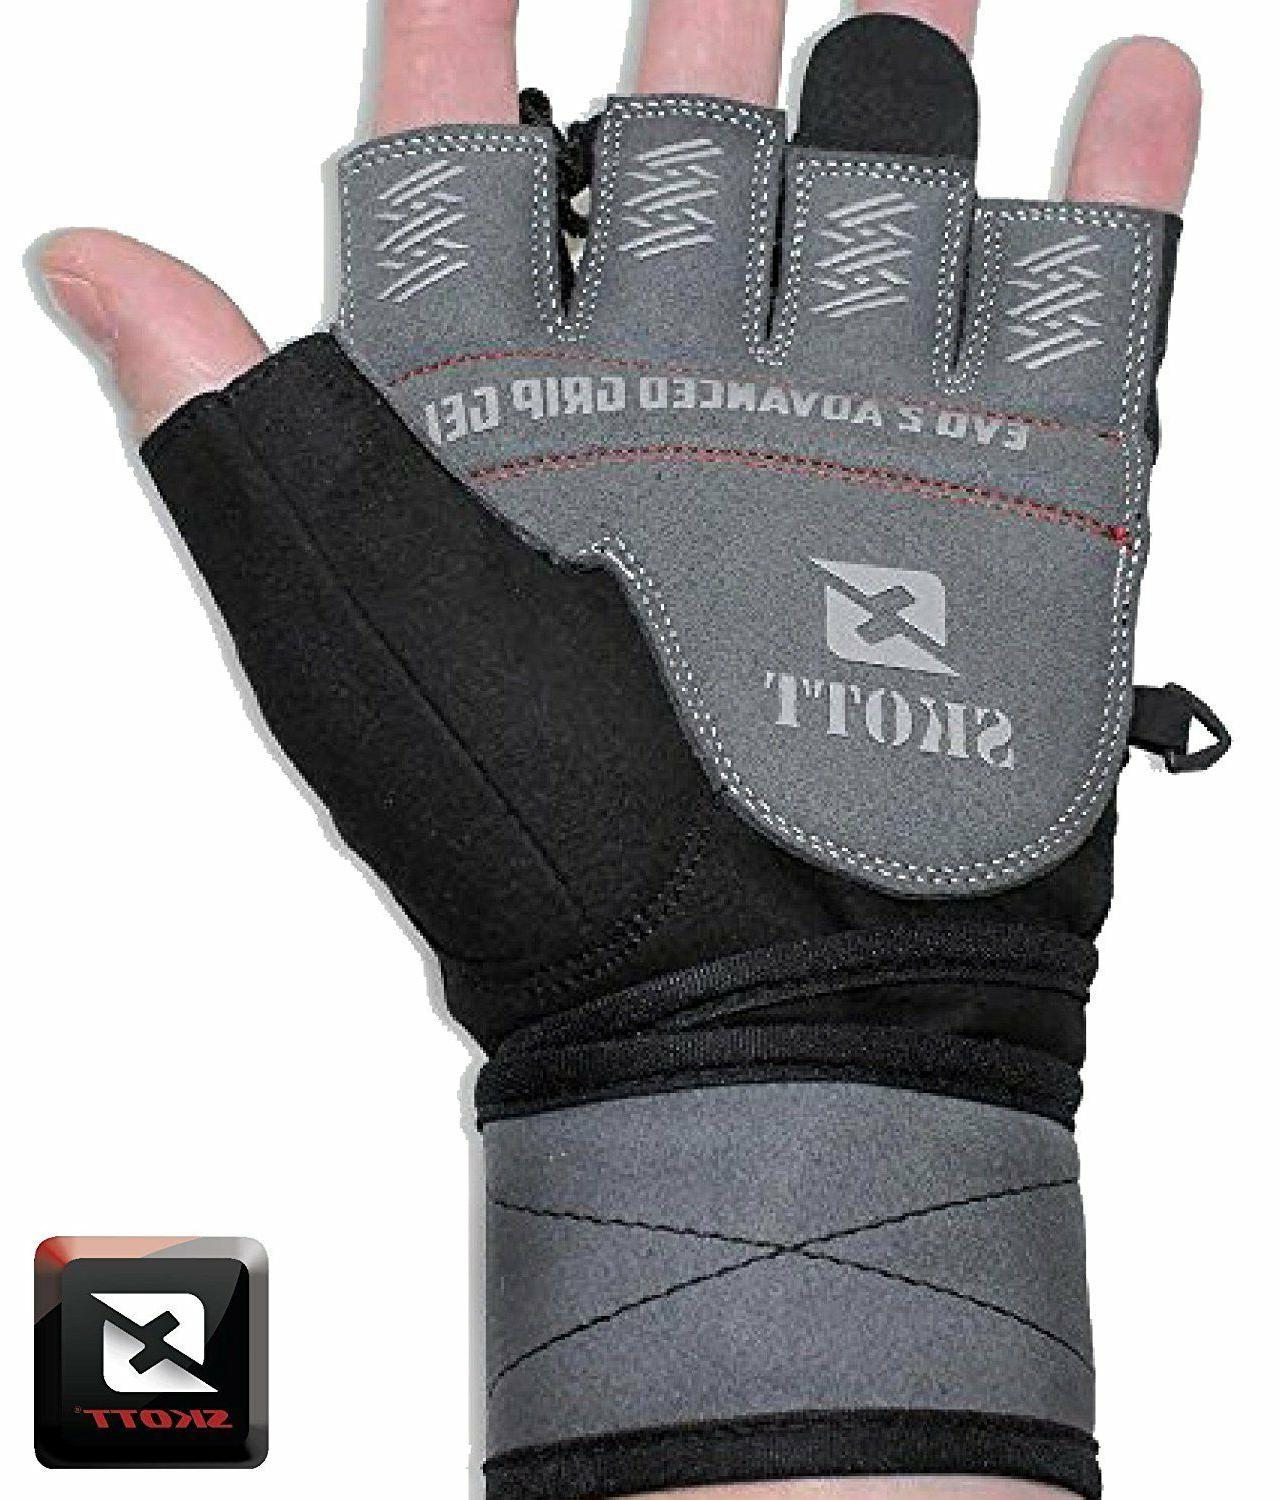 2016 2 Gloves with Wrist Wrap Support